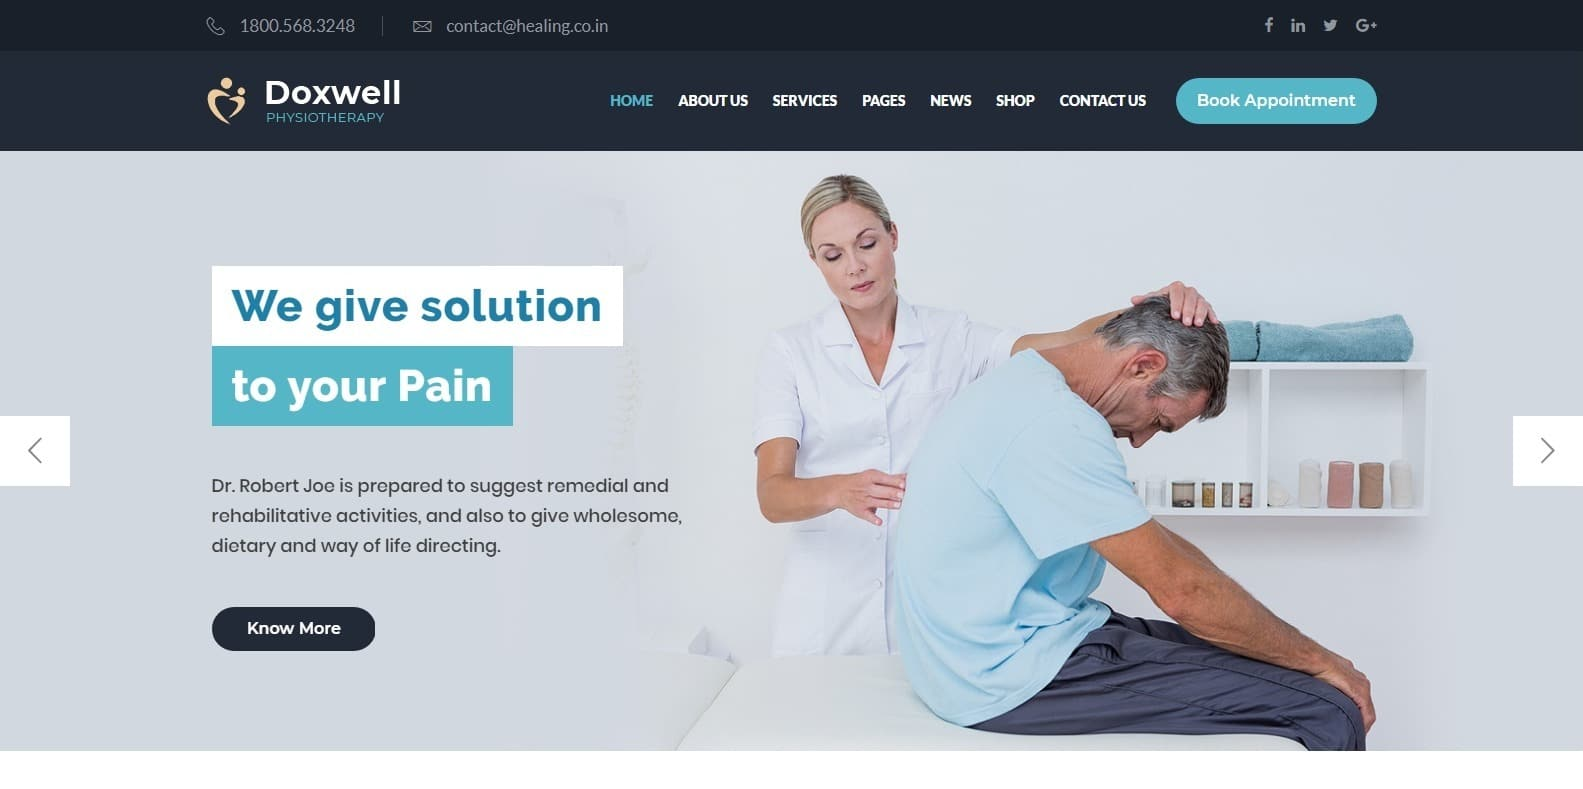 doxwell-wordpress-physical-therapy-website-template